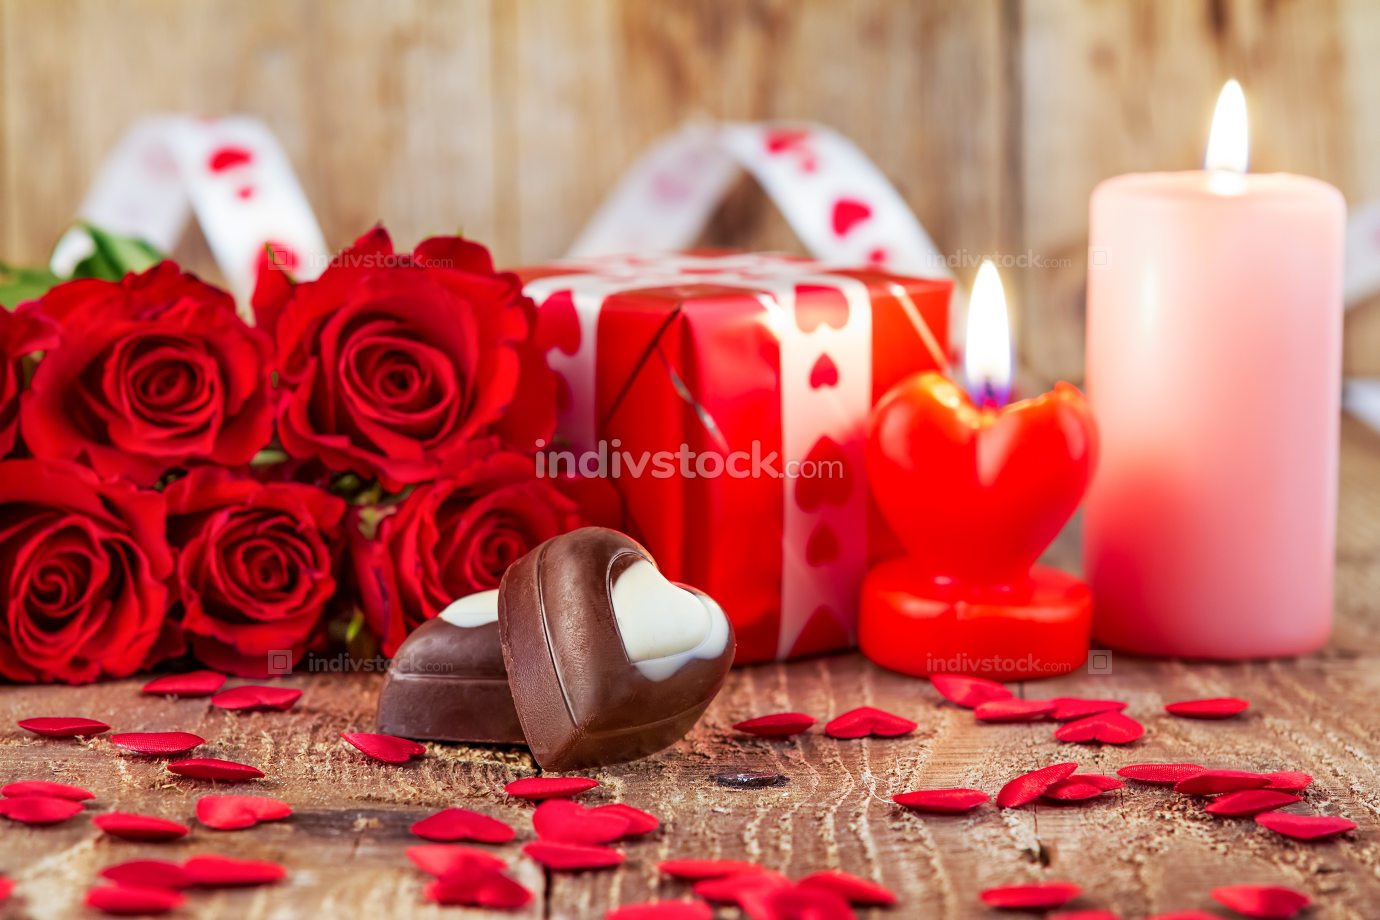 Chocolate pralines in front of bouquet of red roses